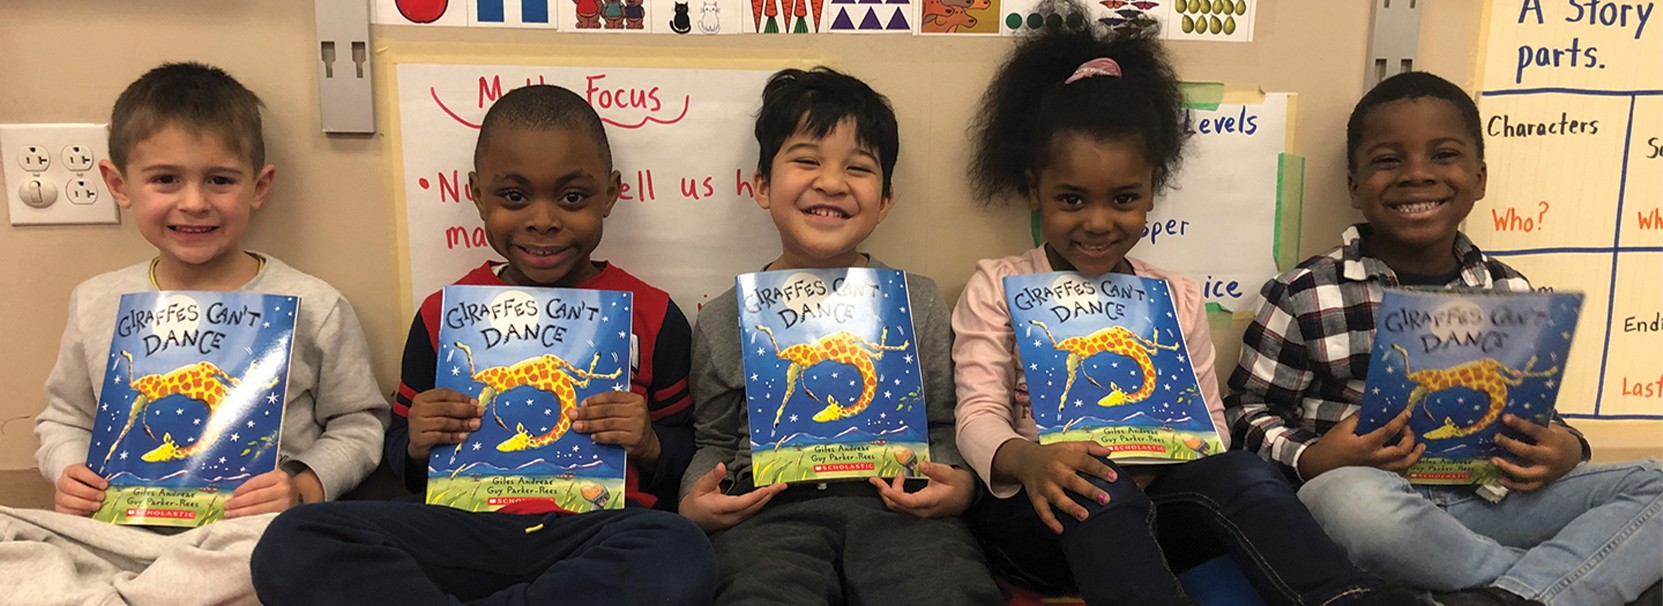 group of young students holding a book titled giraffes can't dance